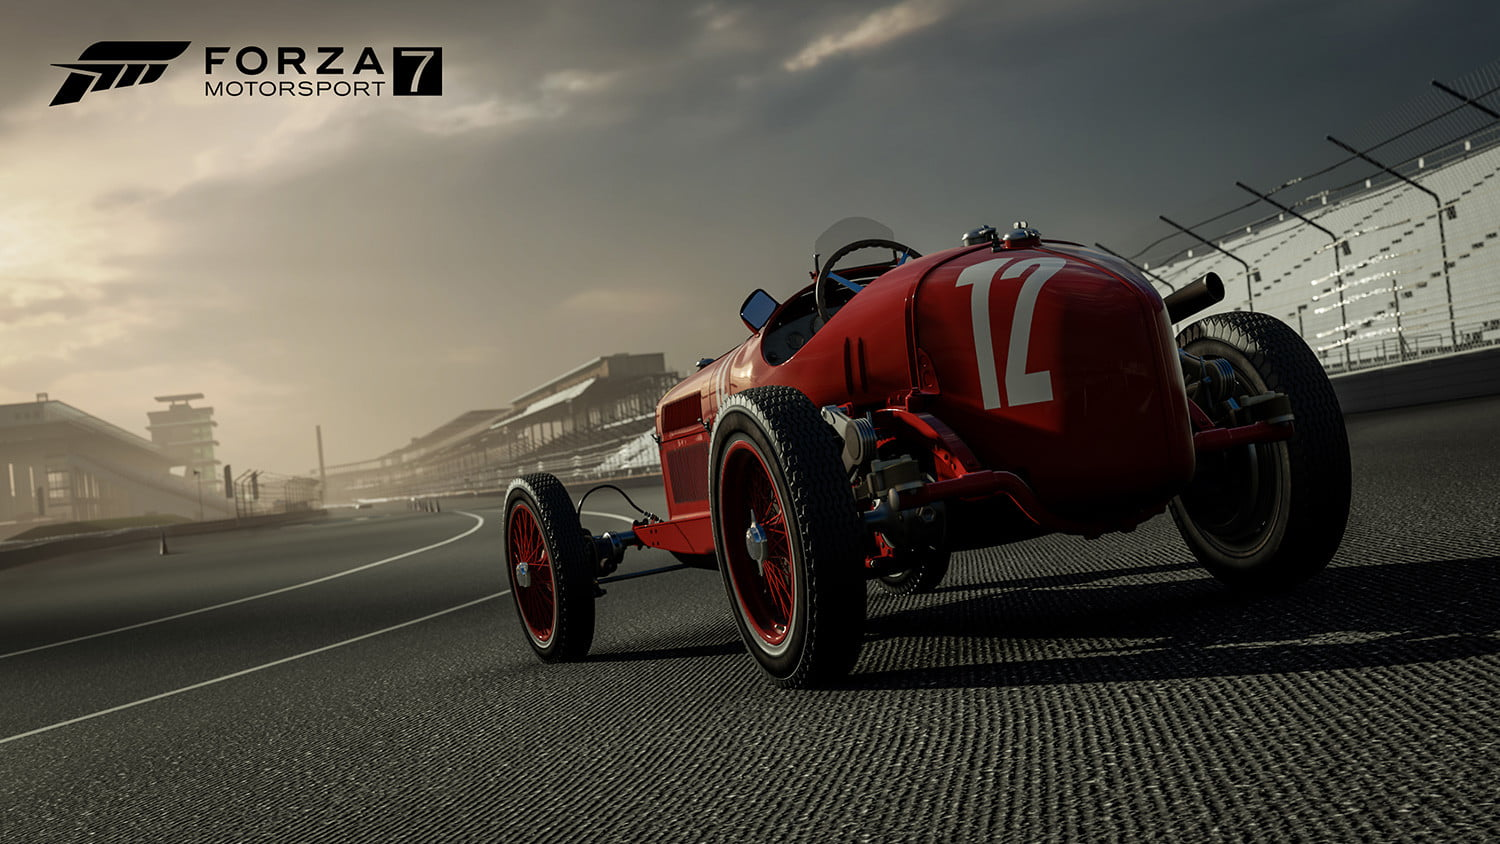 forza motorsport 7 review why realistic racing rules digital trends. Black Bedroom Furniture Sets. Home Design Ideas